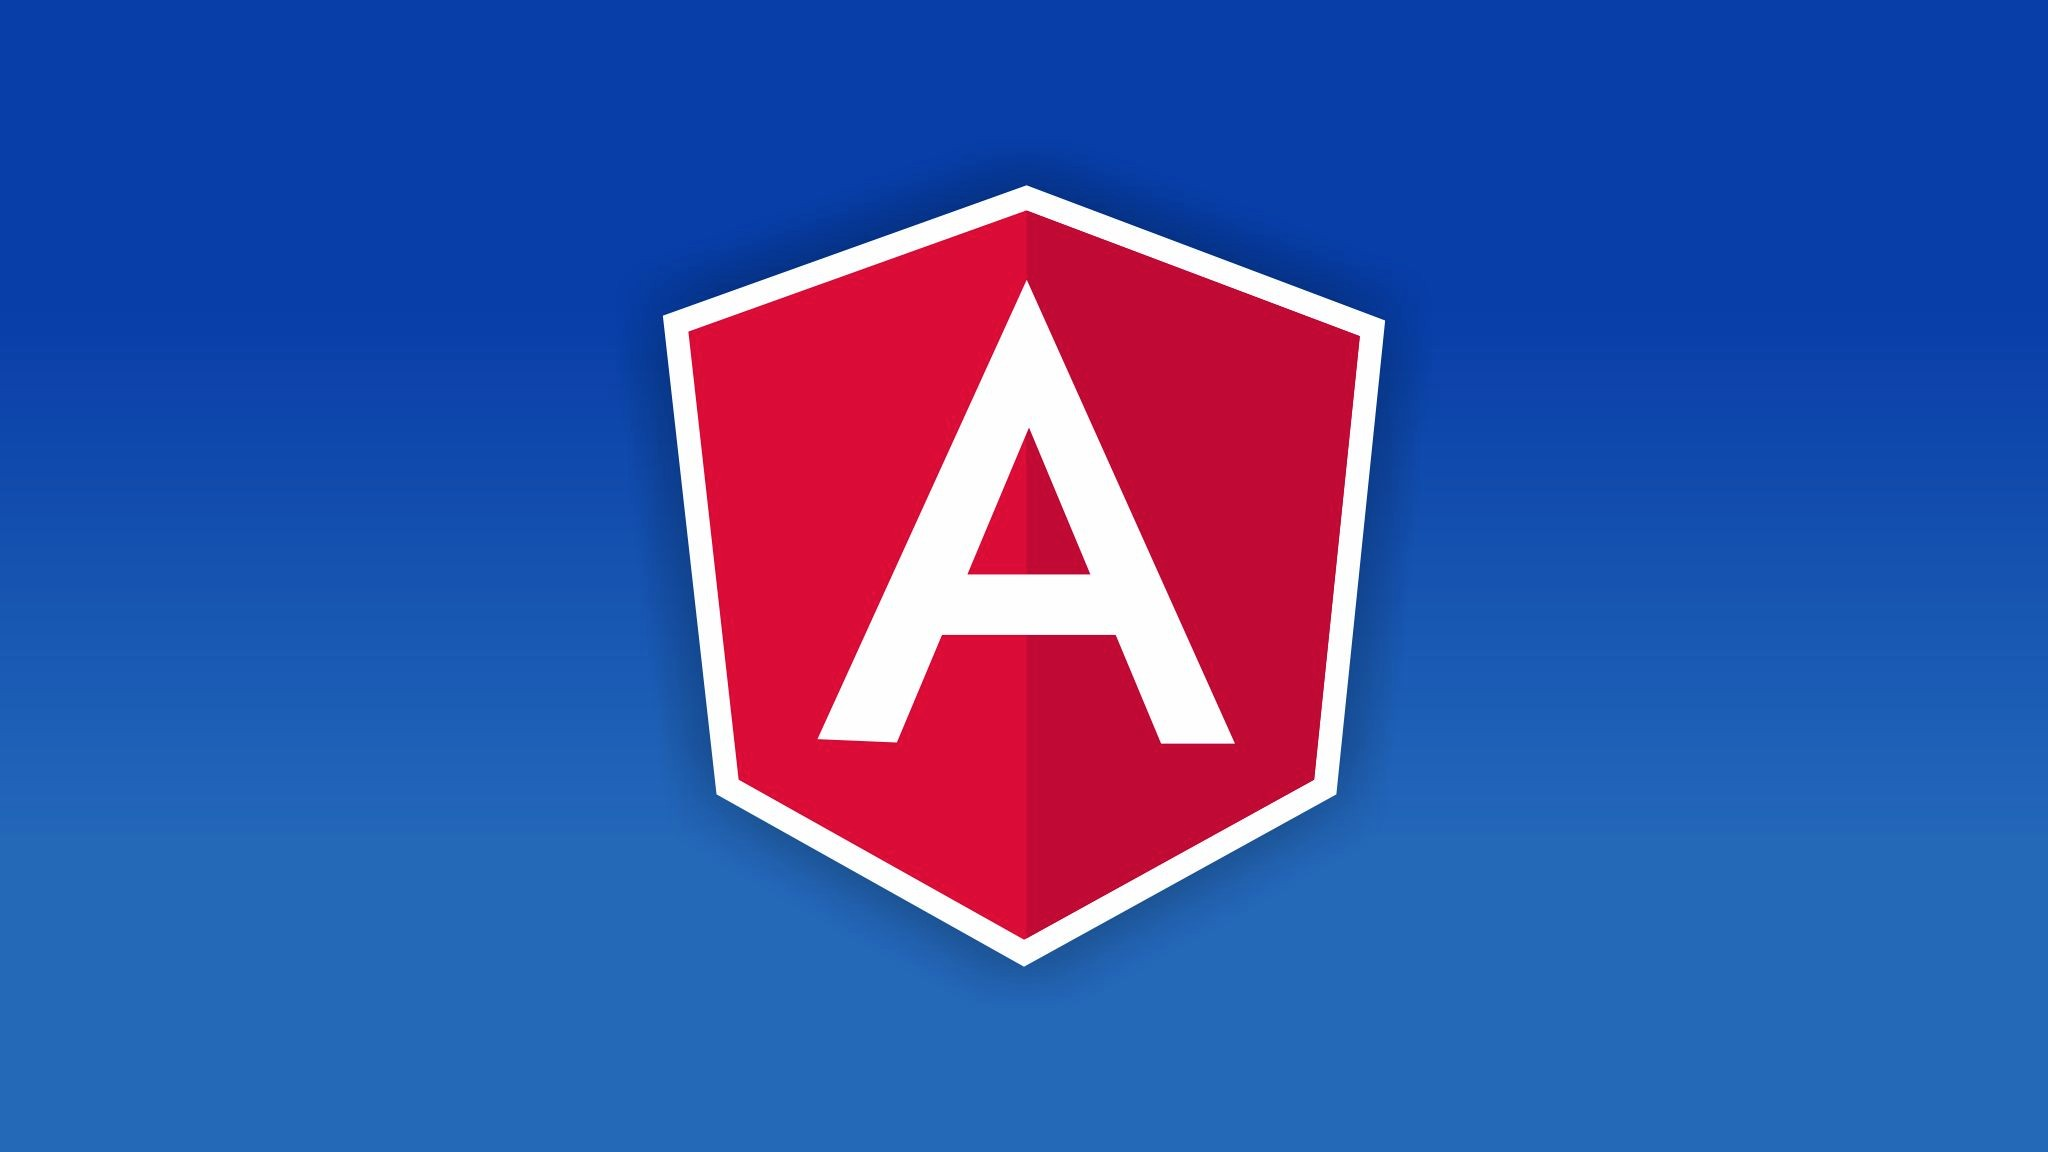 Angular 4: Beginner to Pro in as little as 1 week | Code with Mosh